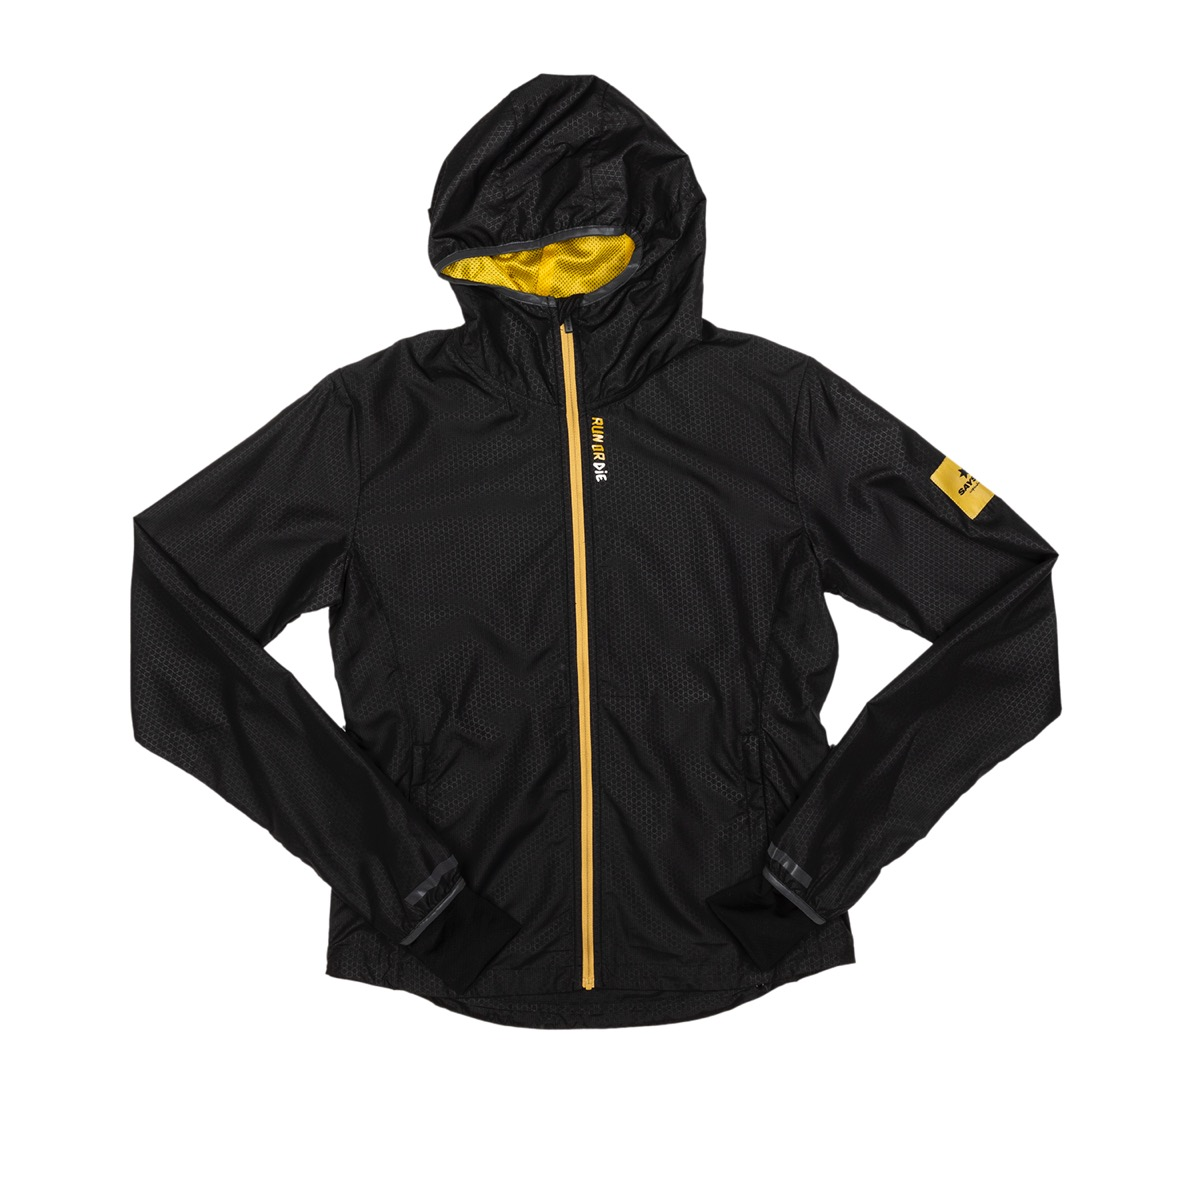 SaySky Run Or Die Pace Jacket Dame